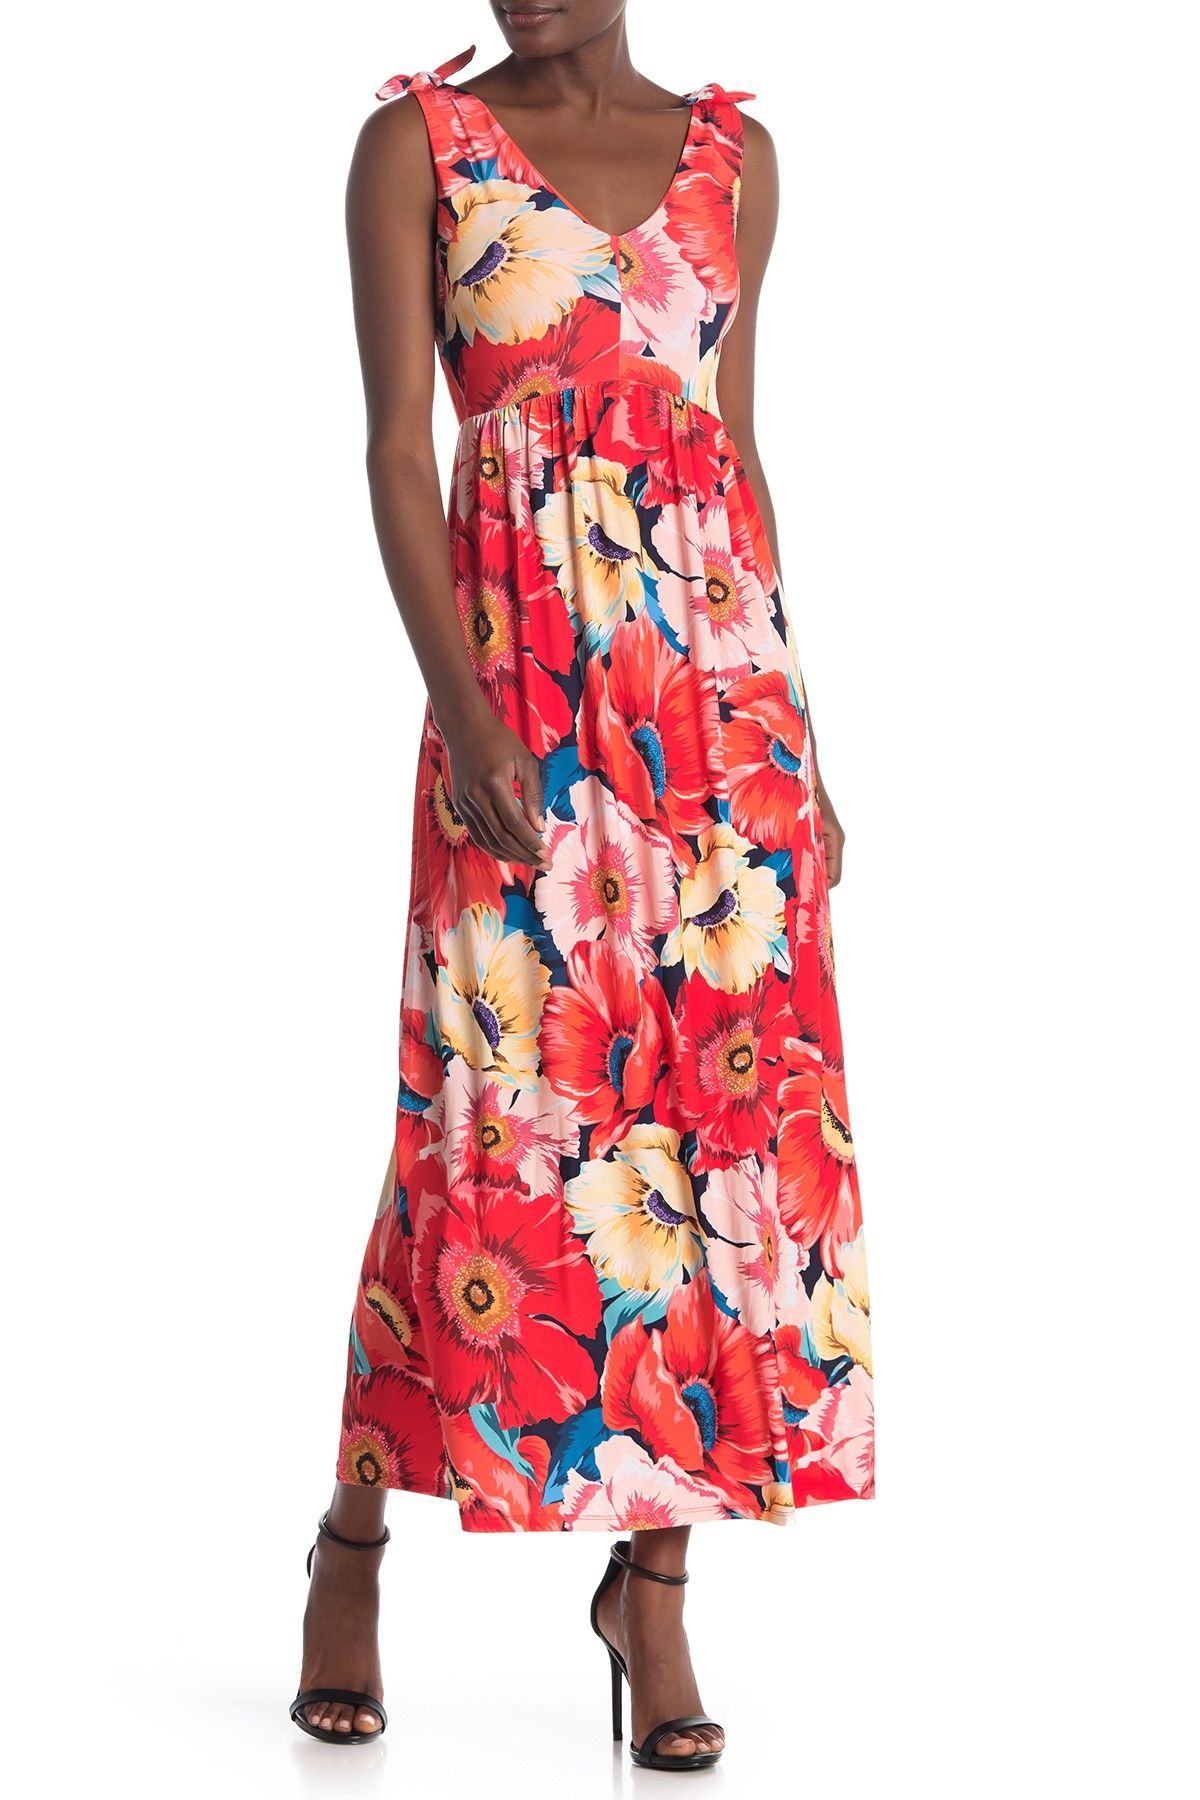 T Tahari Sleeveless V Neck Maxi Dress Is Now 70 Off Free Shipping On Orders Over 100 Dresses Maxi Dress Nordstrom Dresses [ 1800 x 1200 Pixel ]